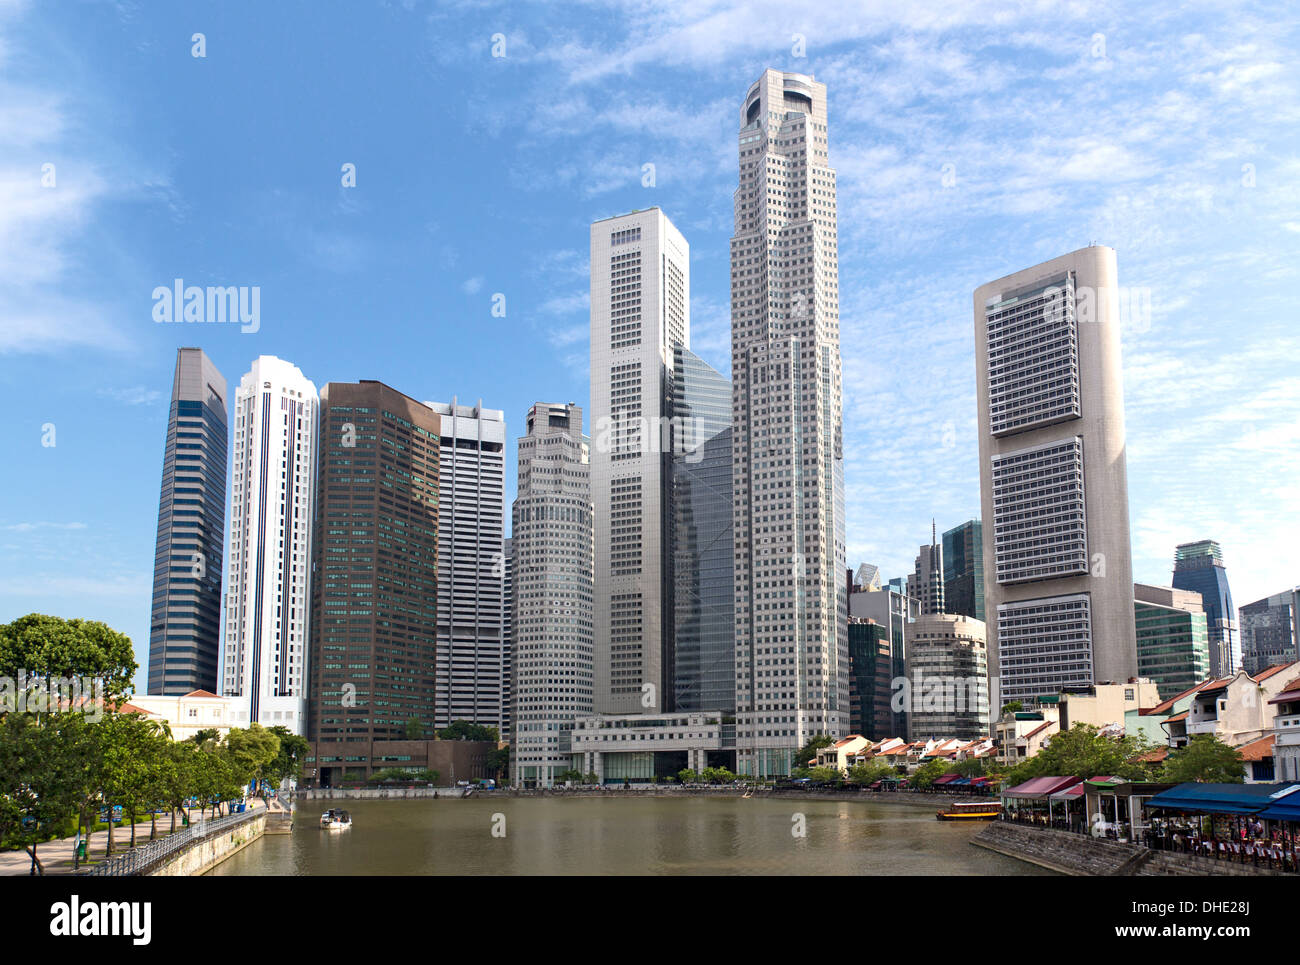 Singapore riverbank in the sunshine day - Stock Image